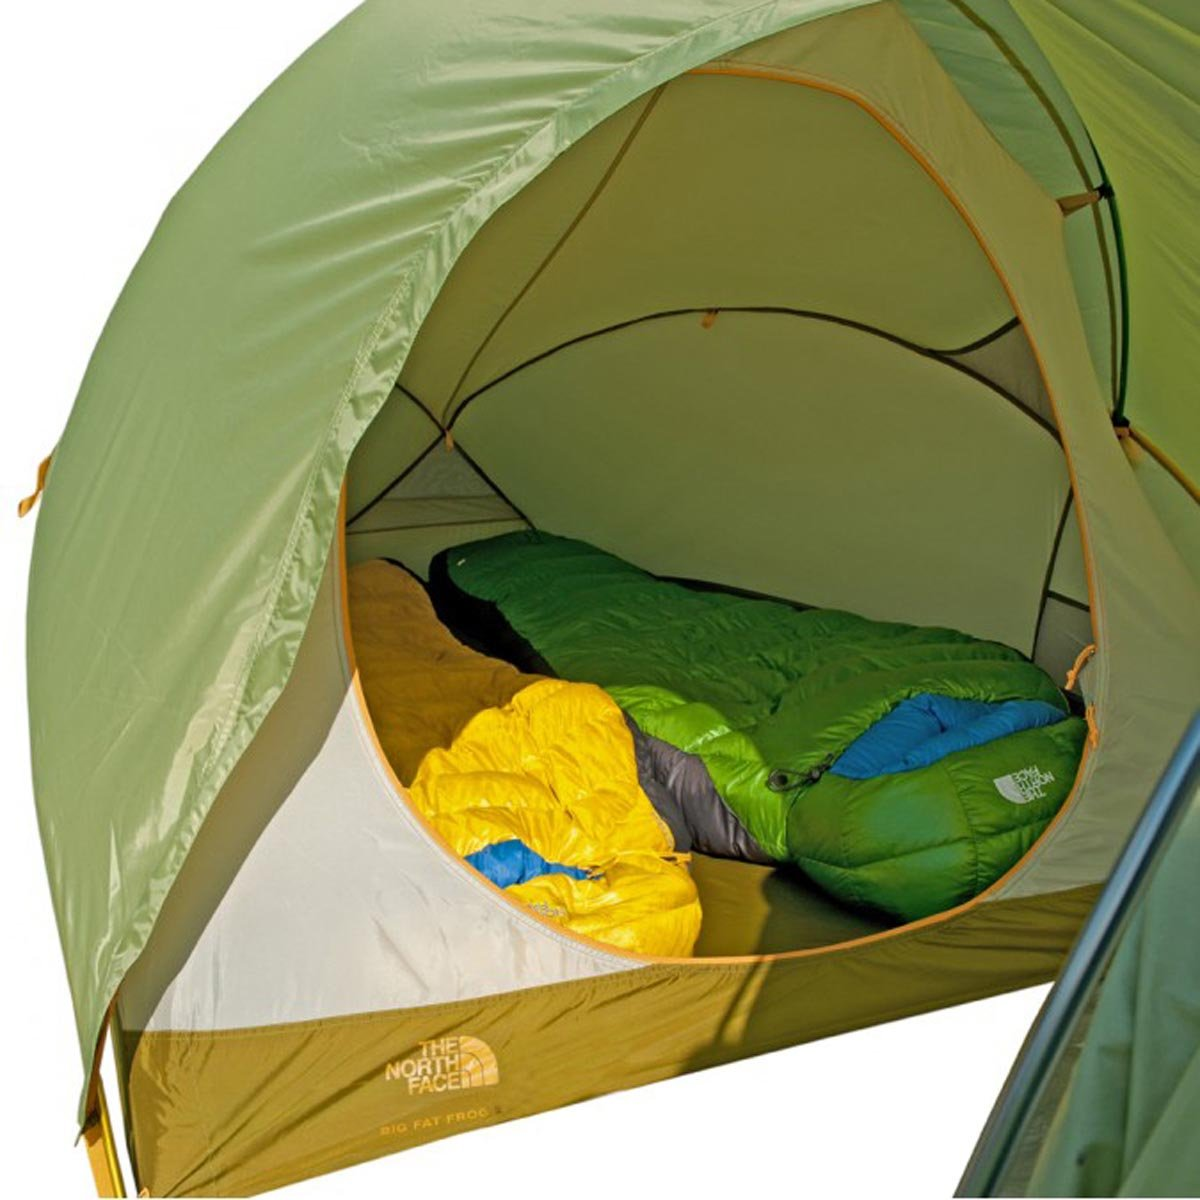 & The North Face Big Fat Frog 2 -: Amazon.co.uk: Sports u0026 Outdoors